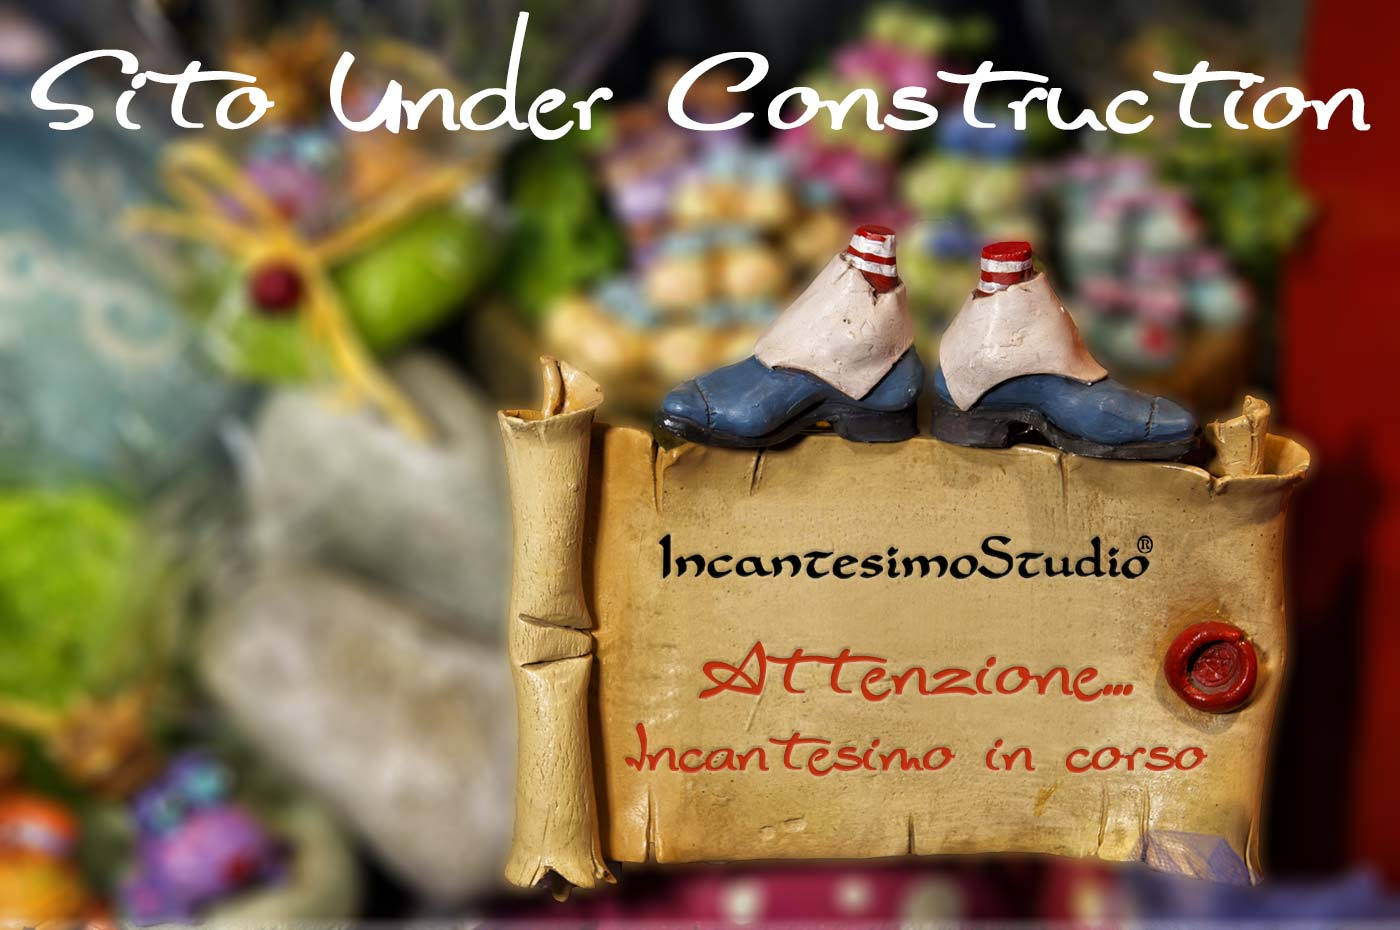 Under construction Incantesimo Studio